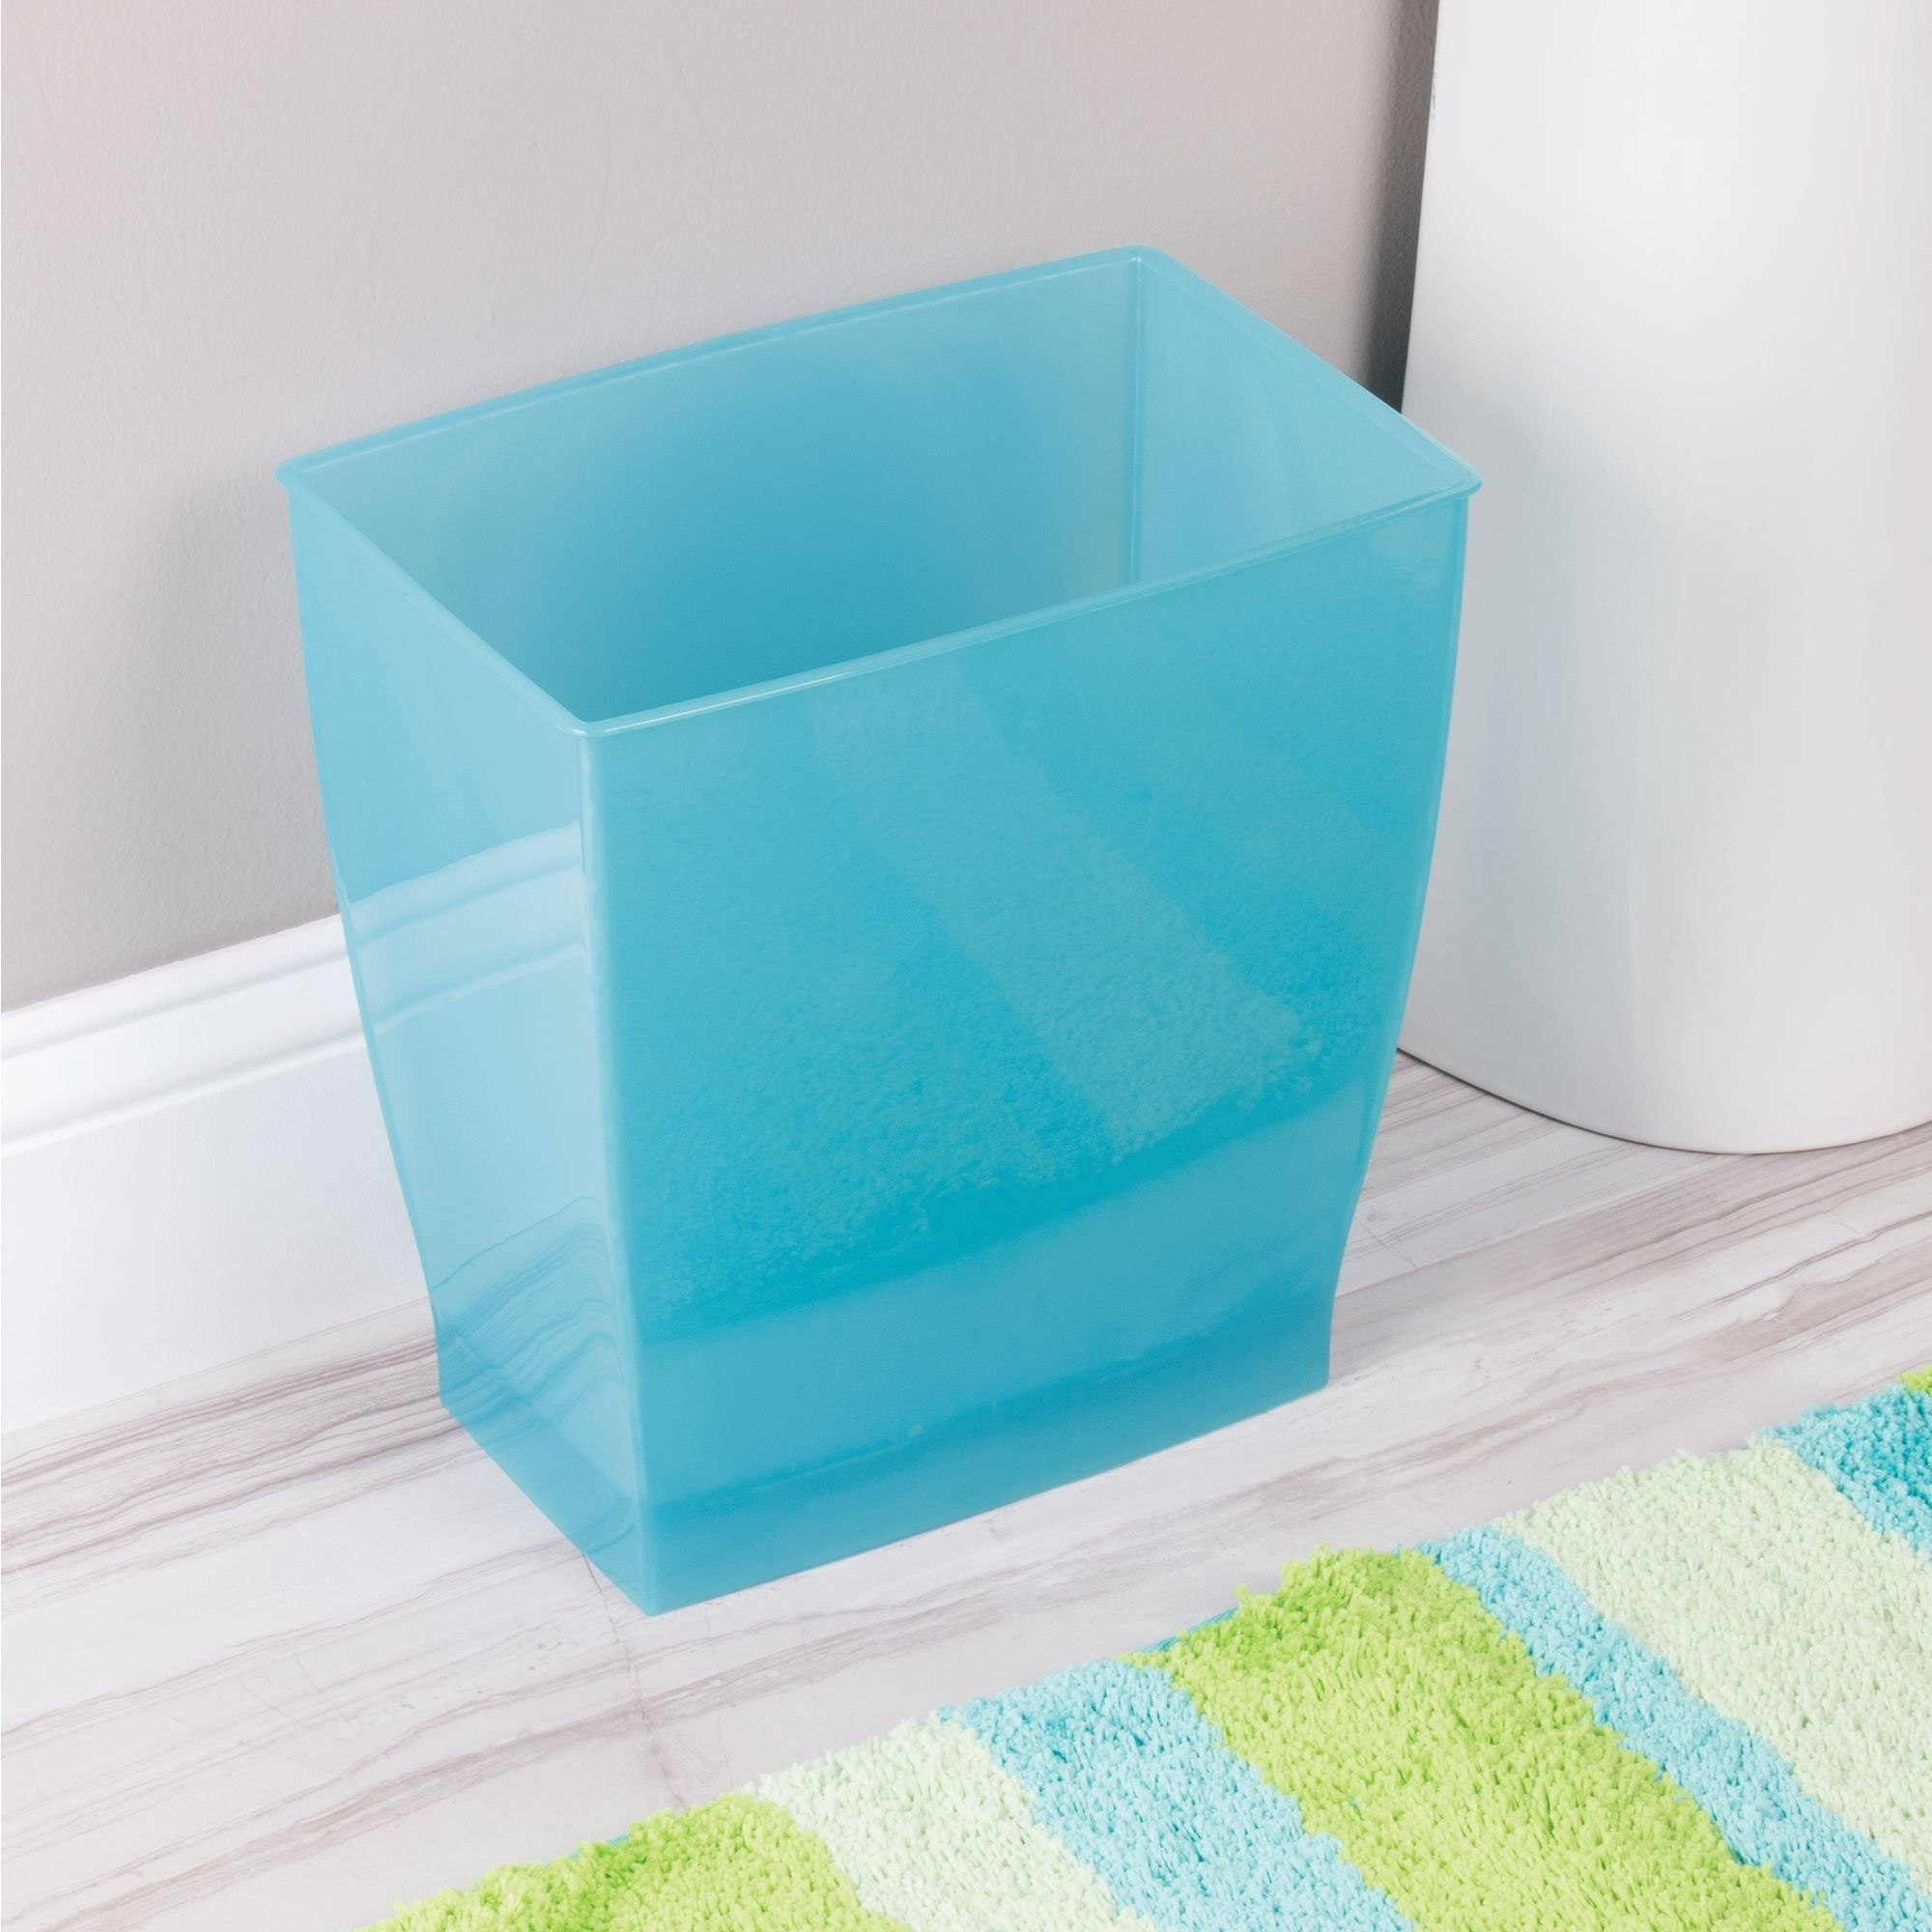 The blue rectangular trash can